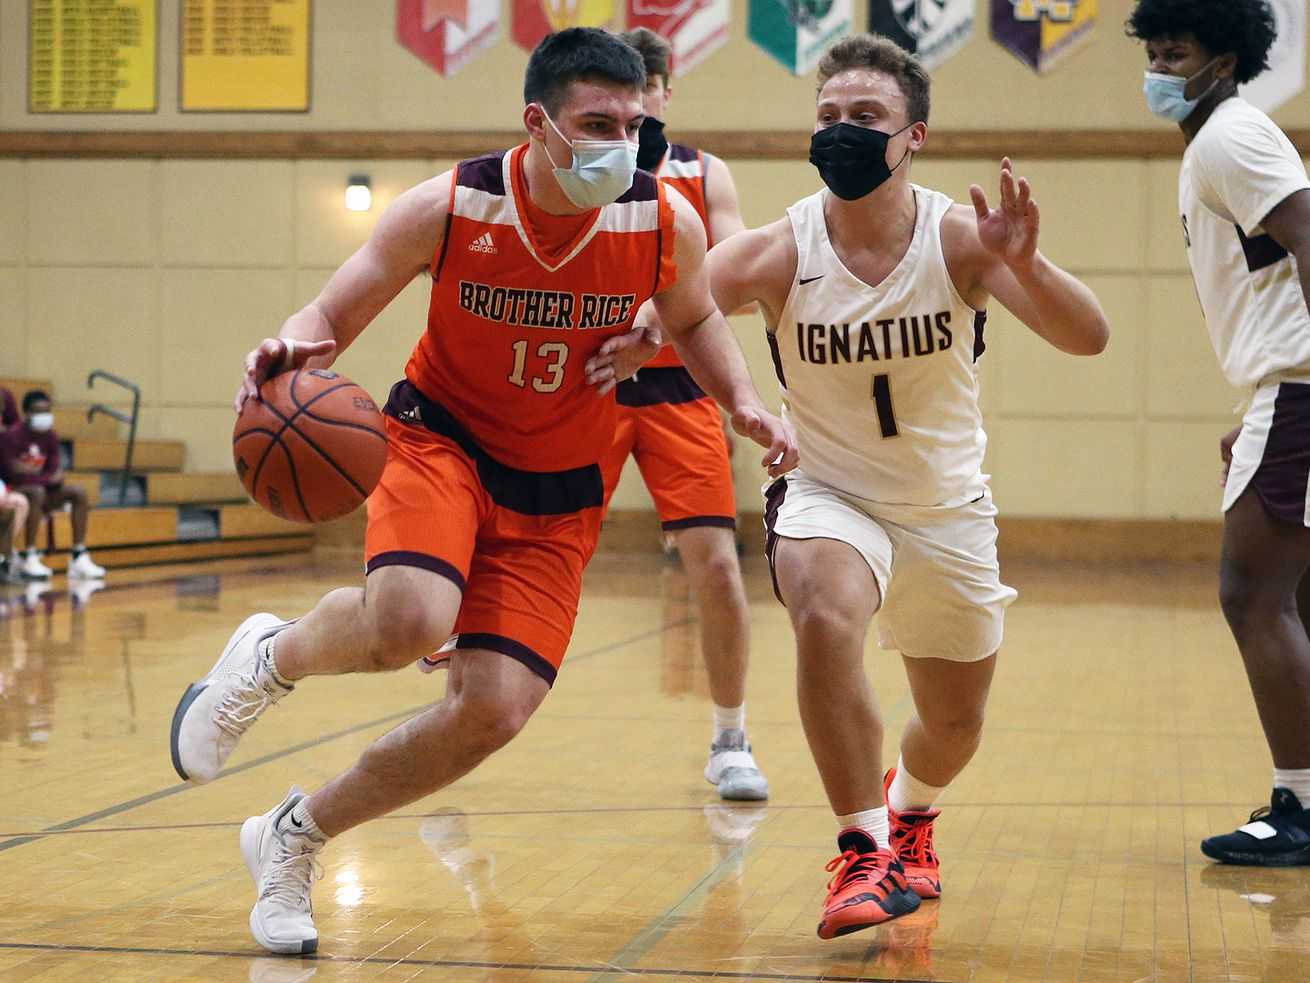 Brother Rice's Cullen Cosme (13) drives toward the basket as St. Ignatius' Parker Higginbottom (1) defends.